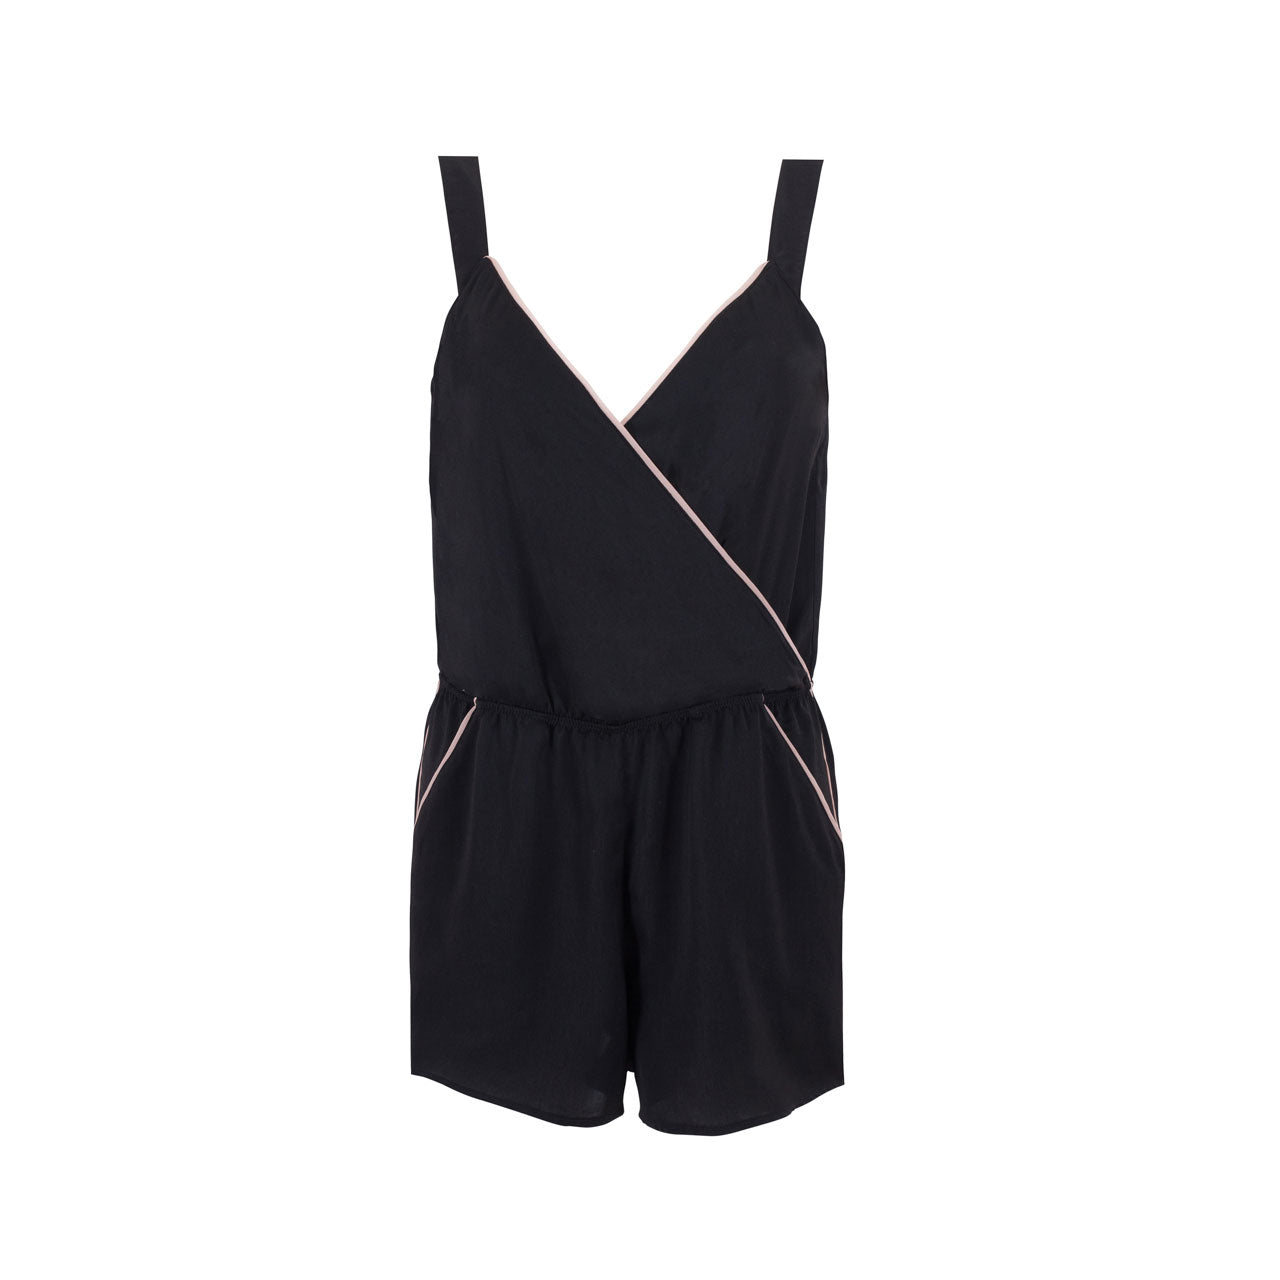 929f7d90a04 Kara Short Playsuit Black – Bluebella